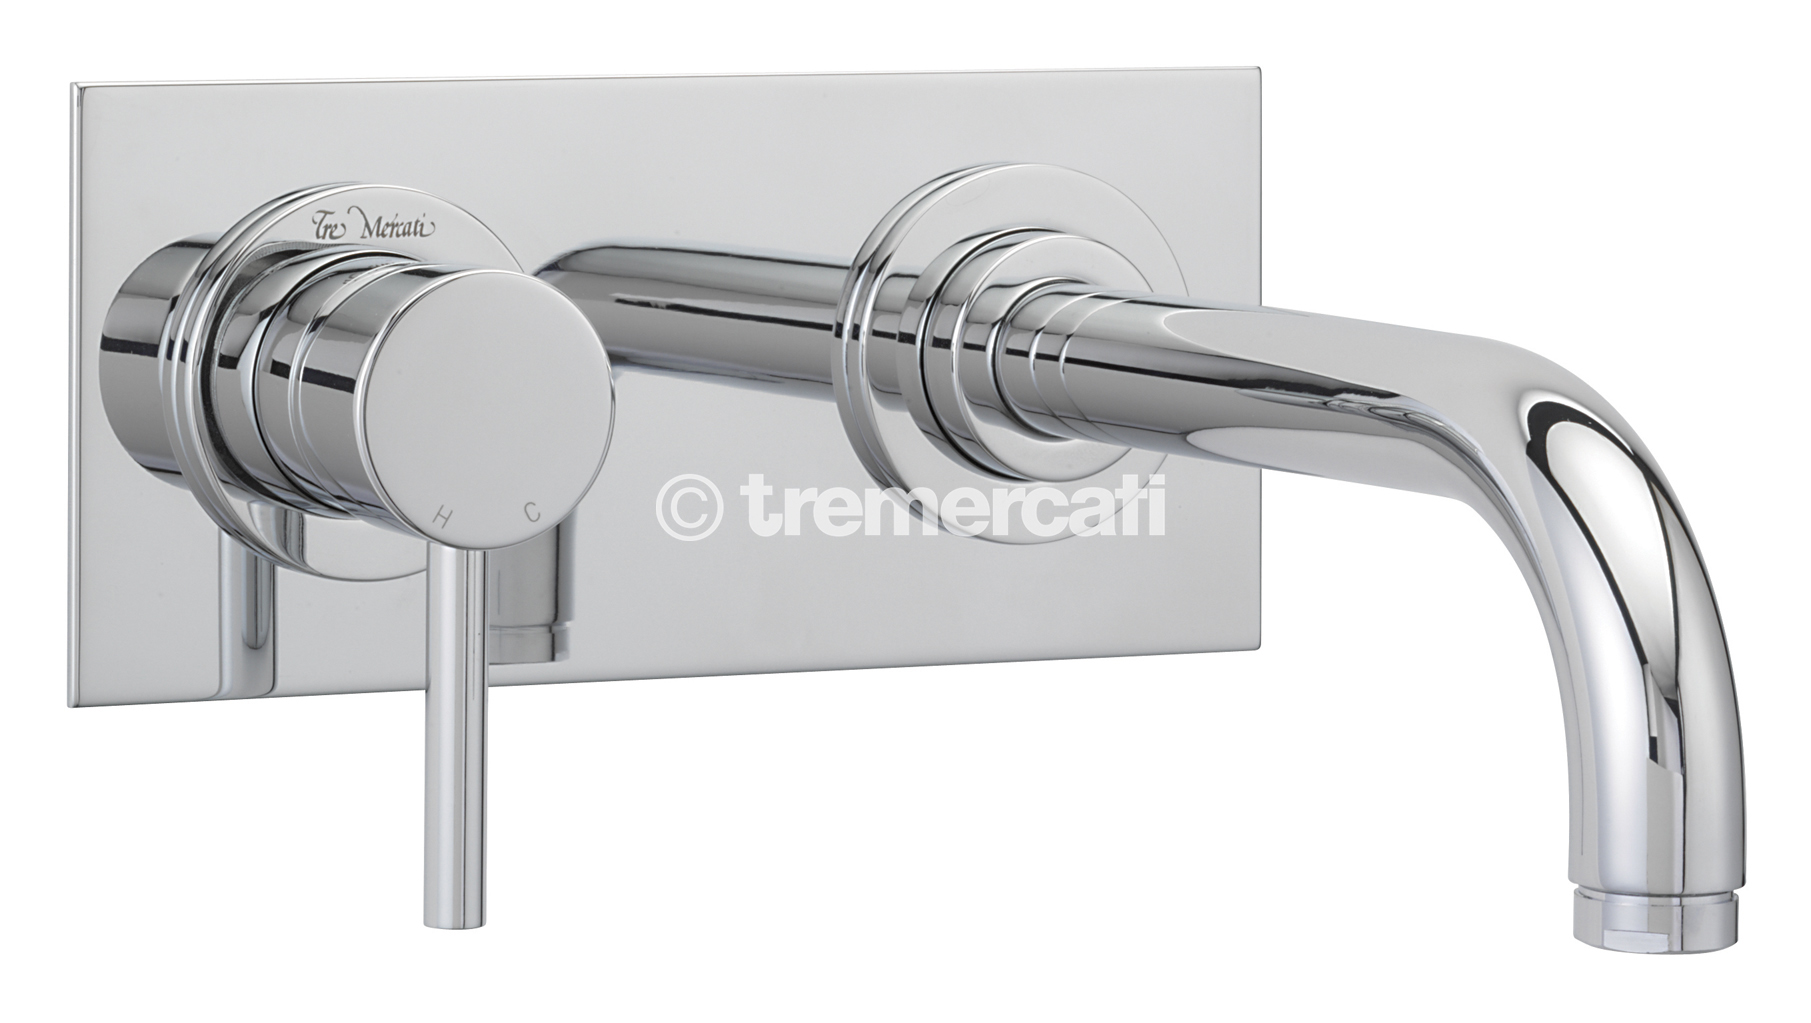 TRE MERCATI MILAN 2 HOLE WALL MOUNTED BASIN MIXER WITH SHORT SPOUT (150MM) - CHROME PLATED